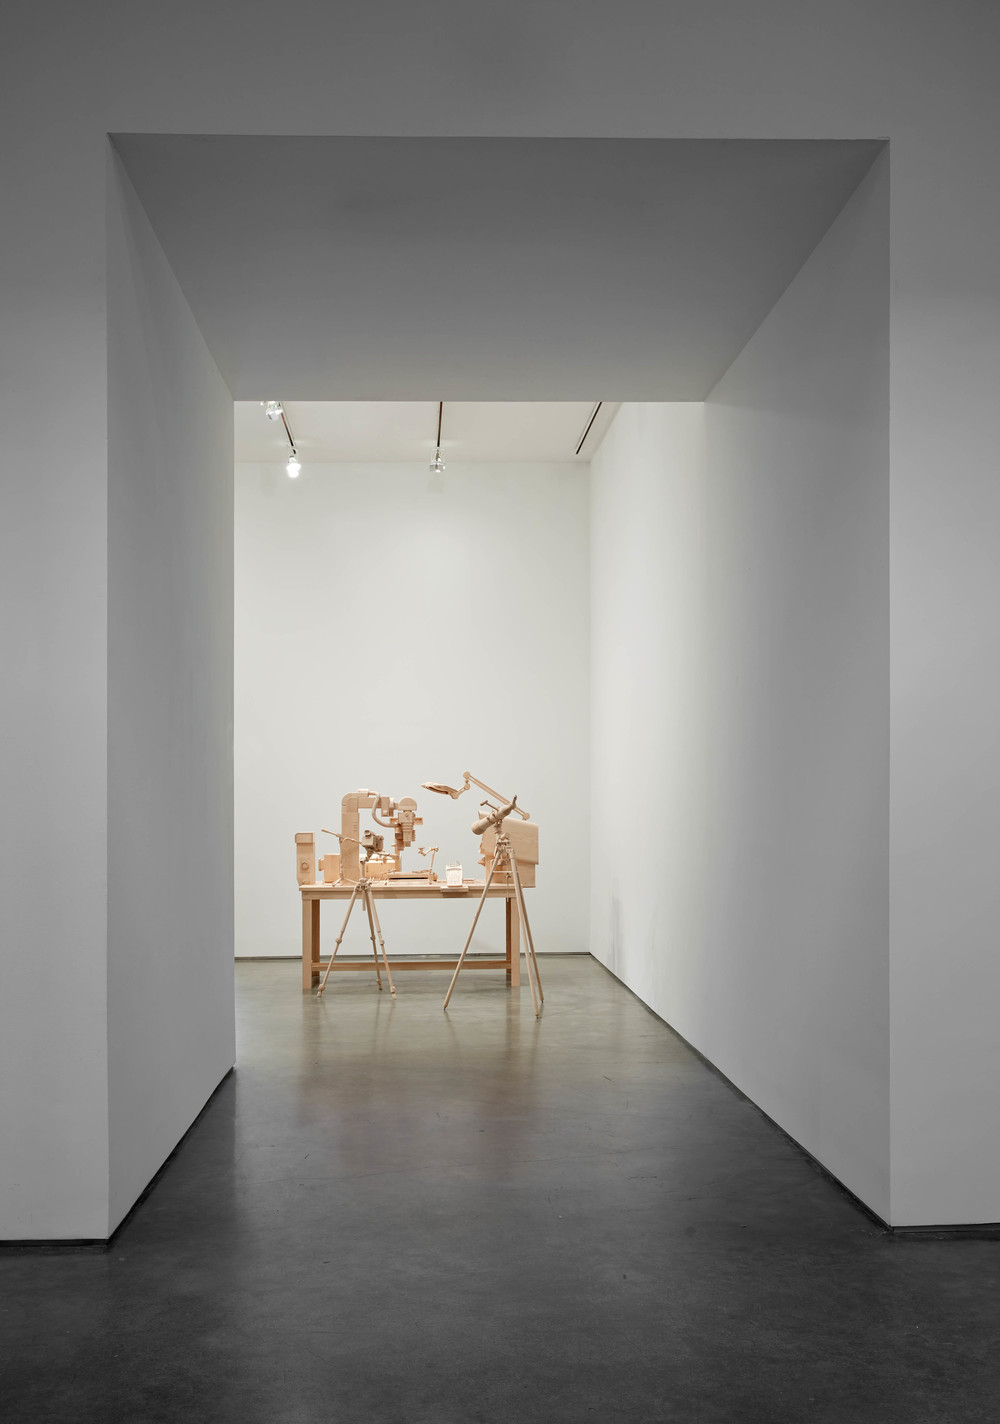 Scrutiny, 2014, Maple, Table: 33 x 72.5 x 38 + 14 inches, Telescope and Tripod: 58.5 x 40 x 26 inches, Photos: Jason Wyche